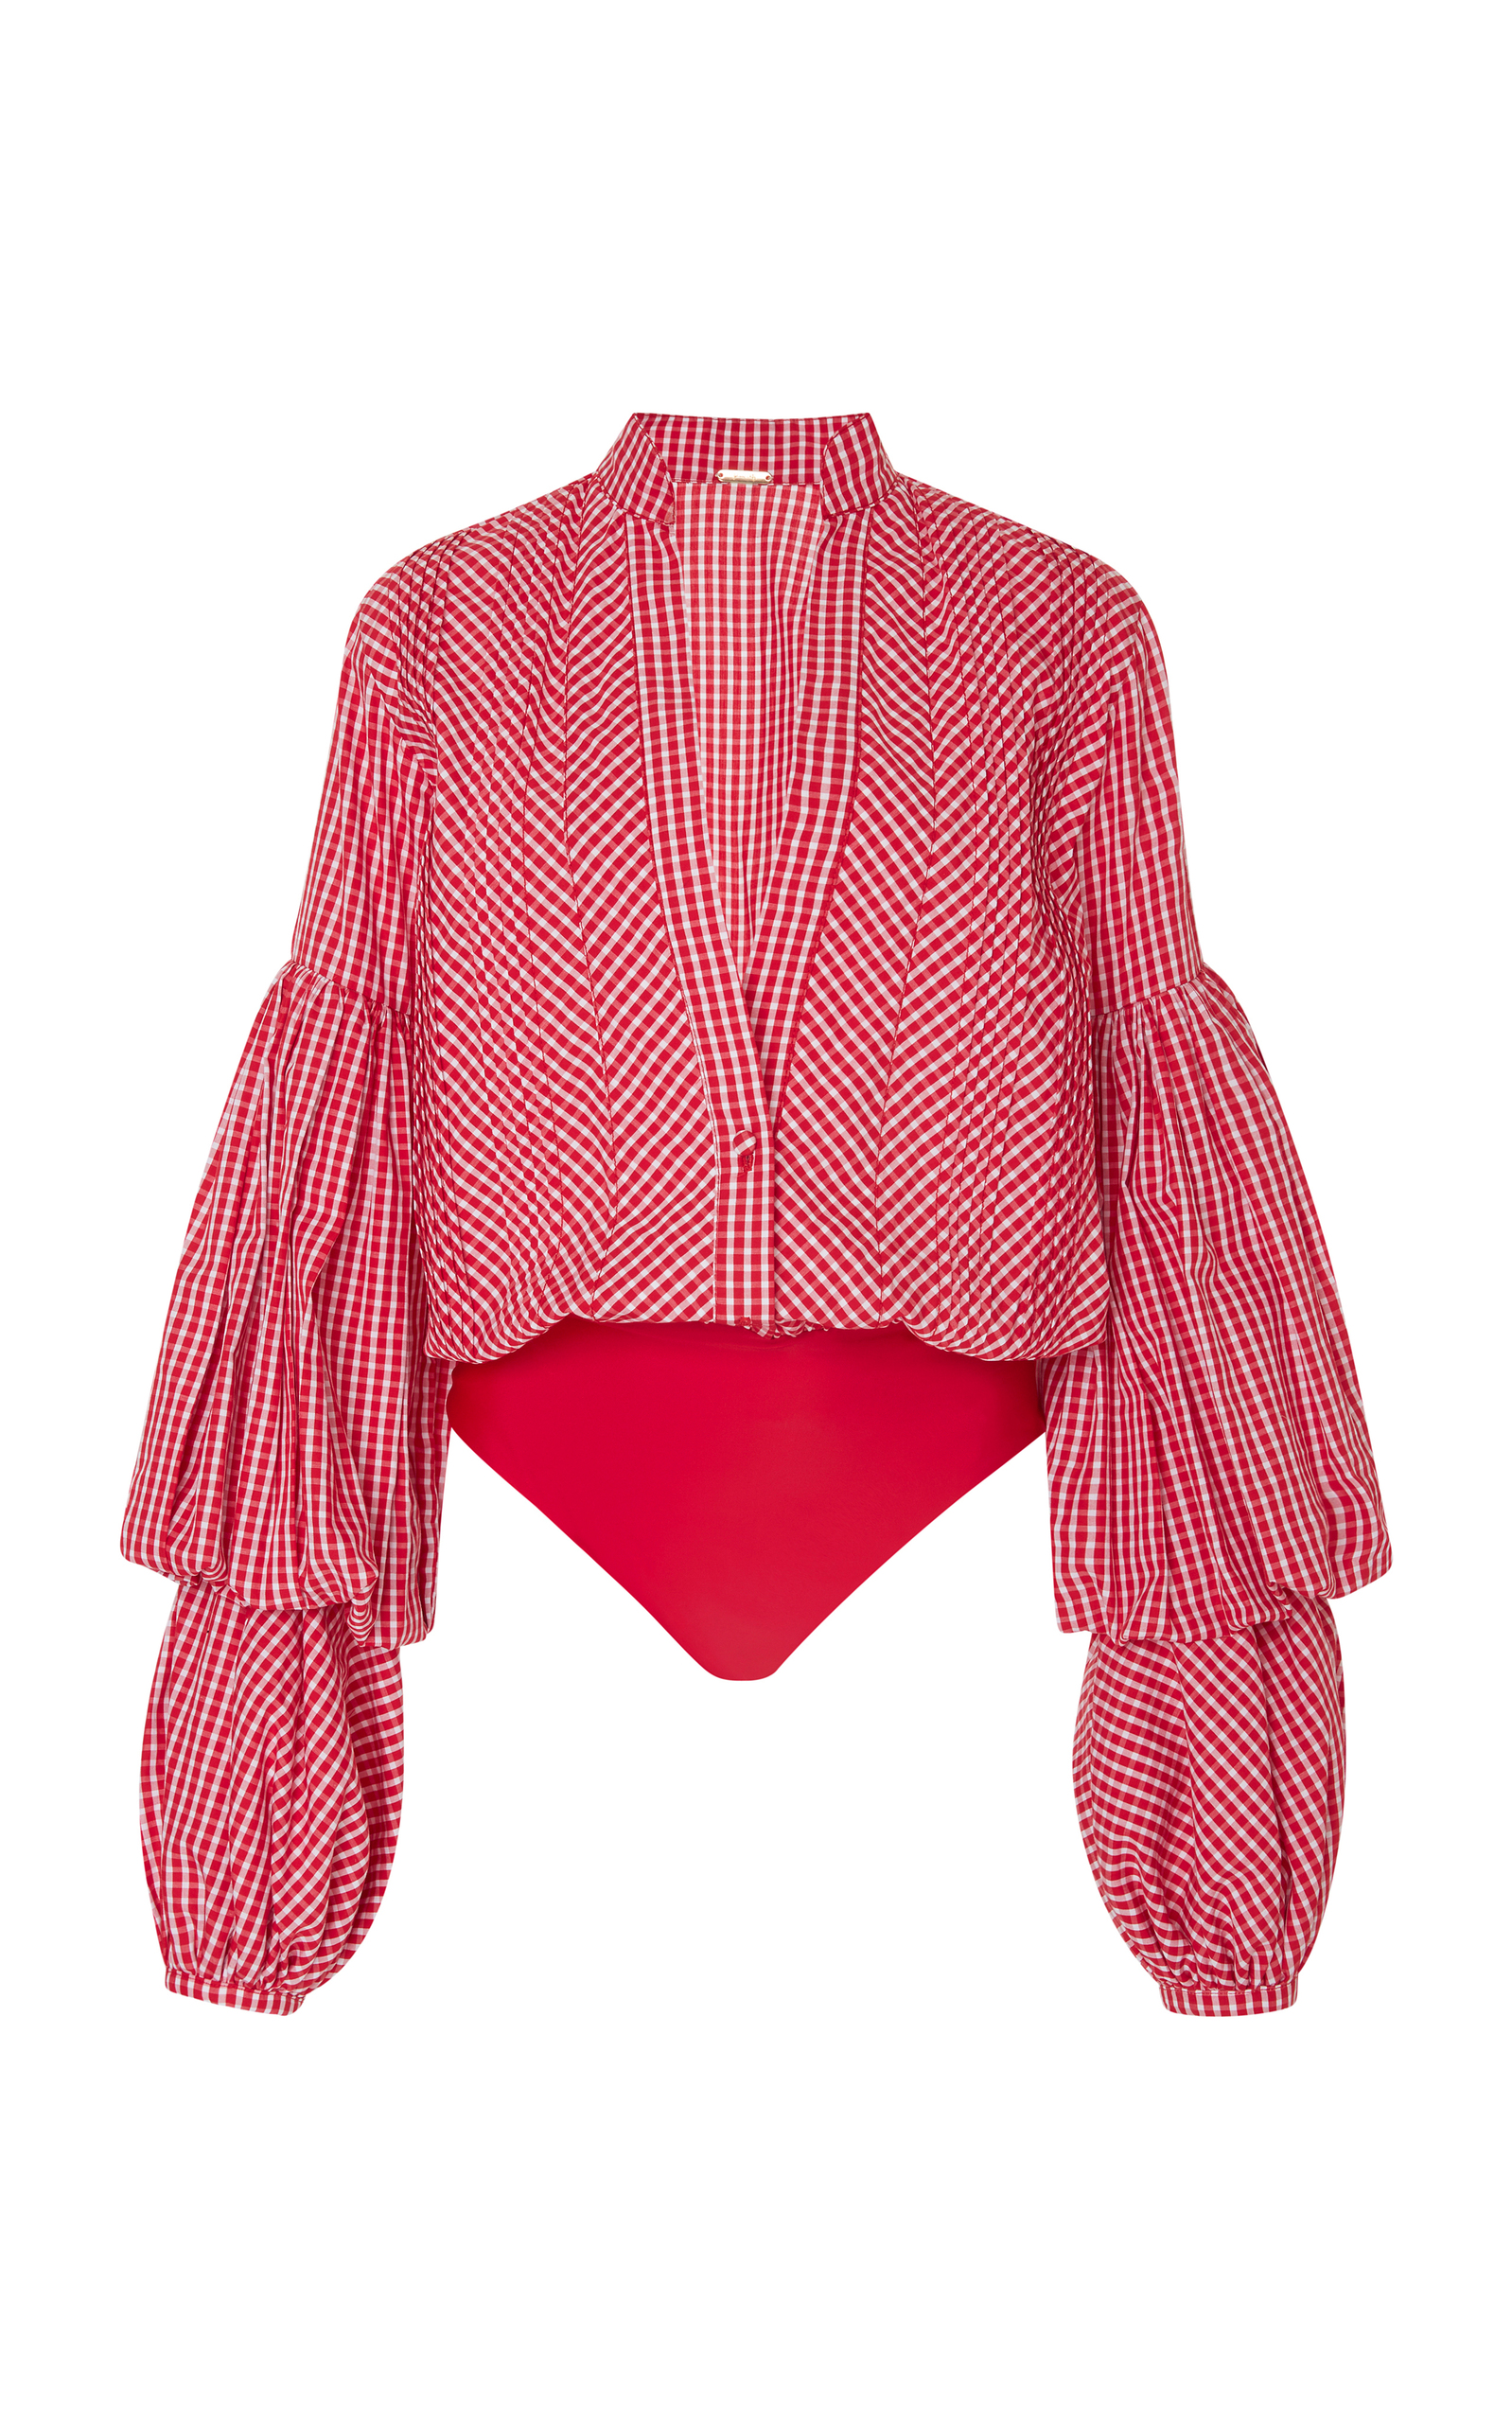 JOHANNA ORTIZ Jicarilla Gingham Cotton-Blend And Stretch-Jersey Bodysuit in Red